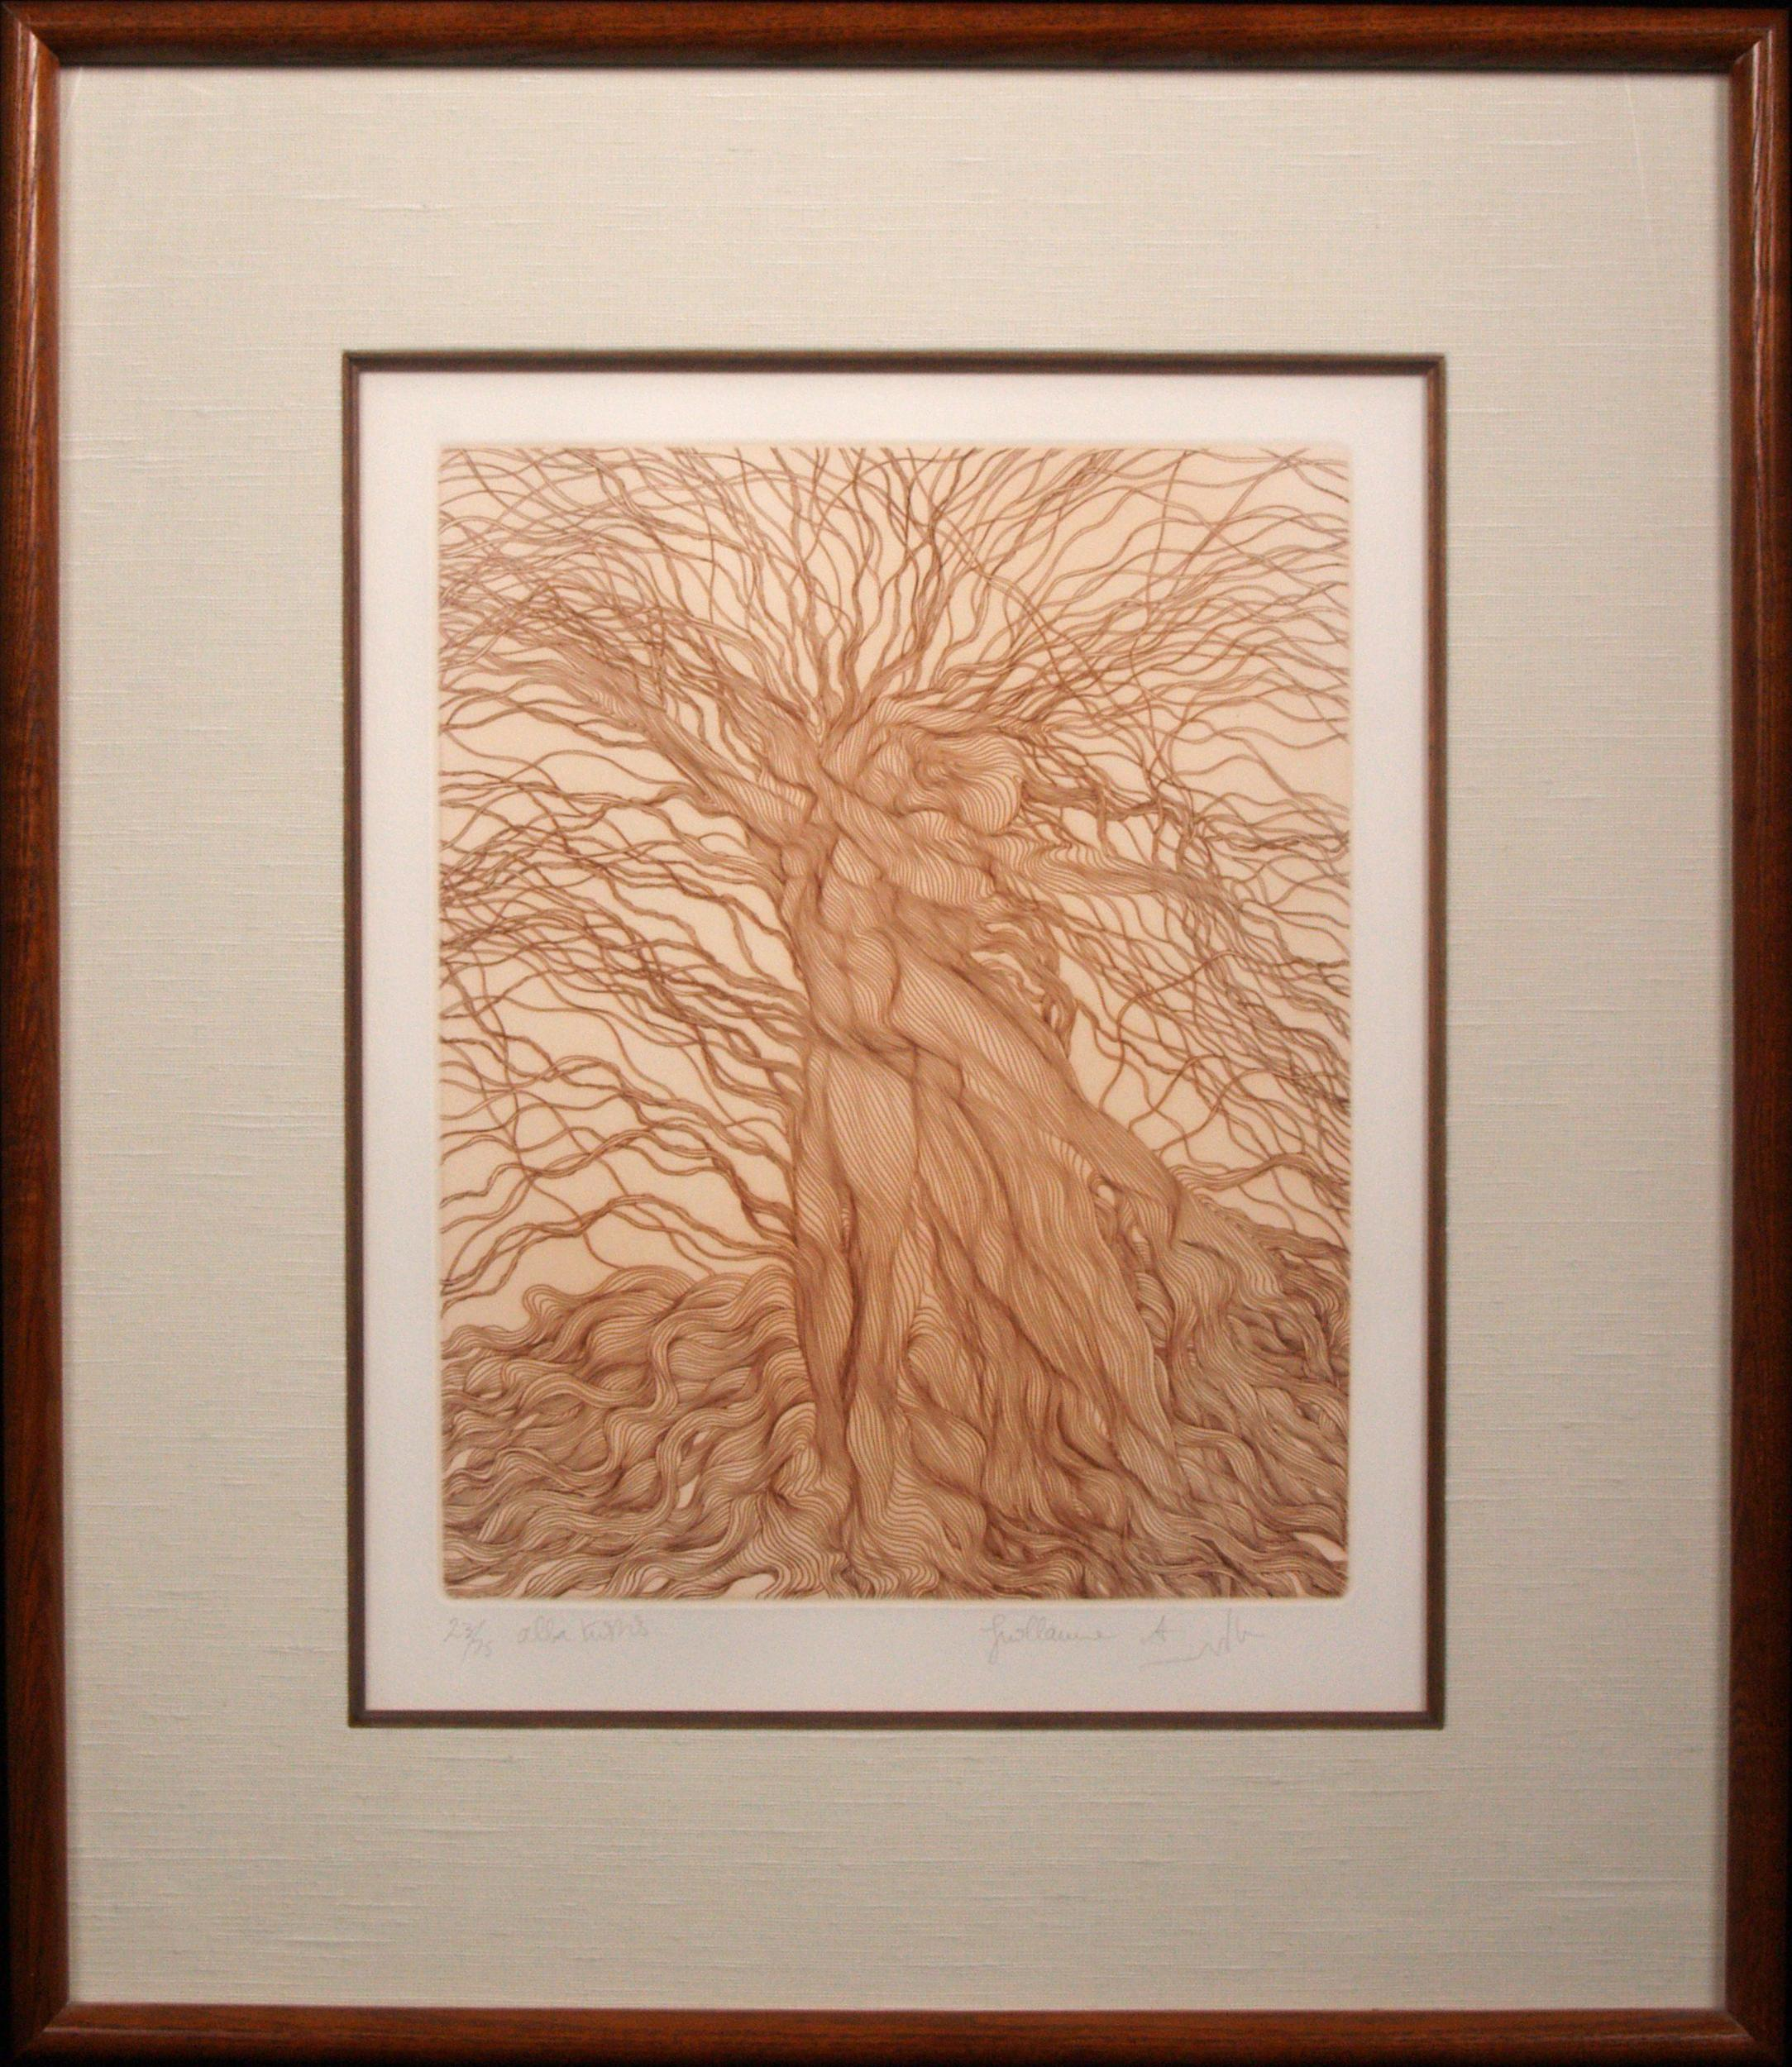 Guillaume Azoulay, Alba Tristis, Etching